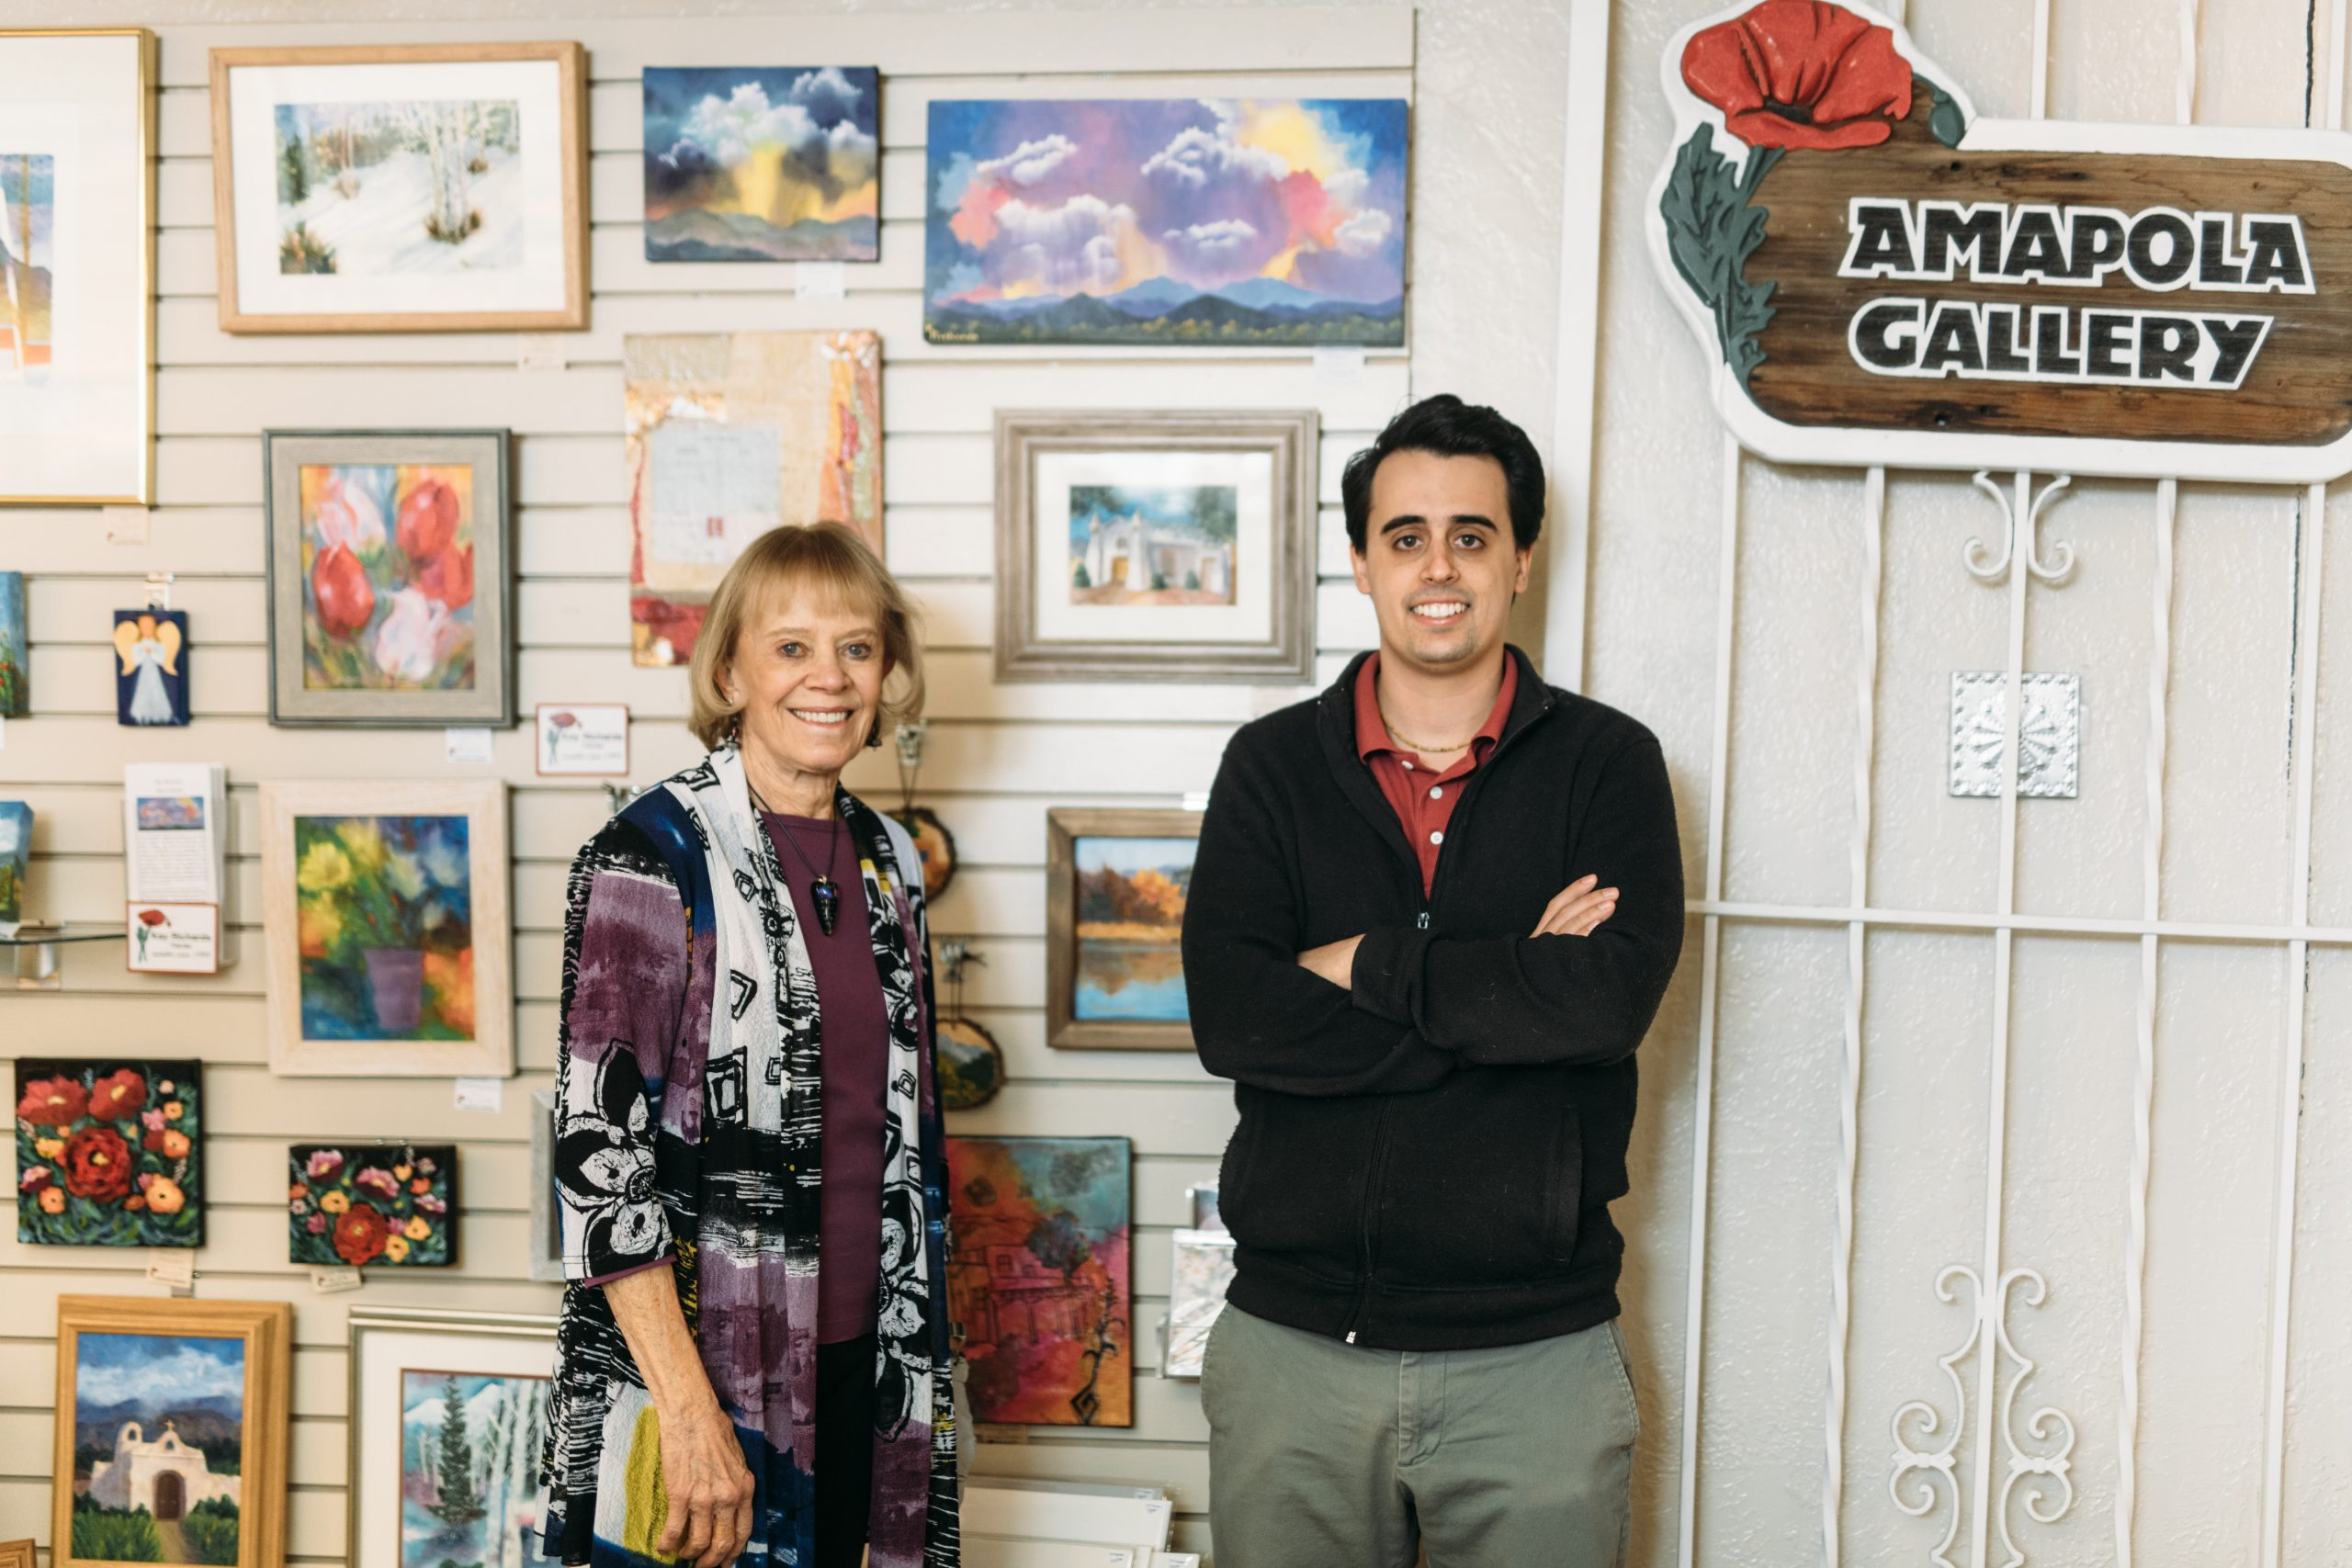 An image of two people who are gallery owners of Ampola Gallery in Albuquerque